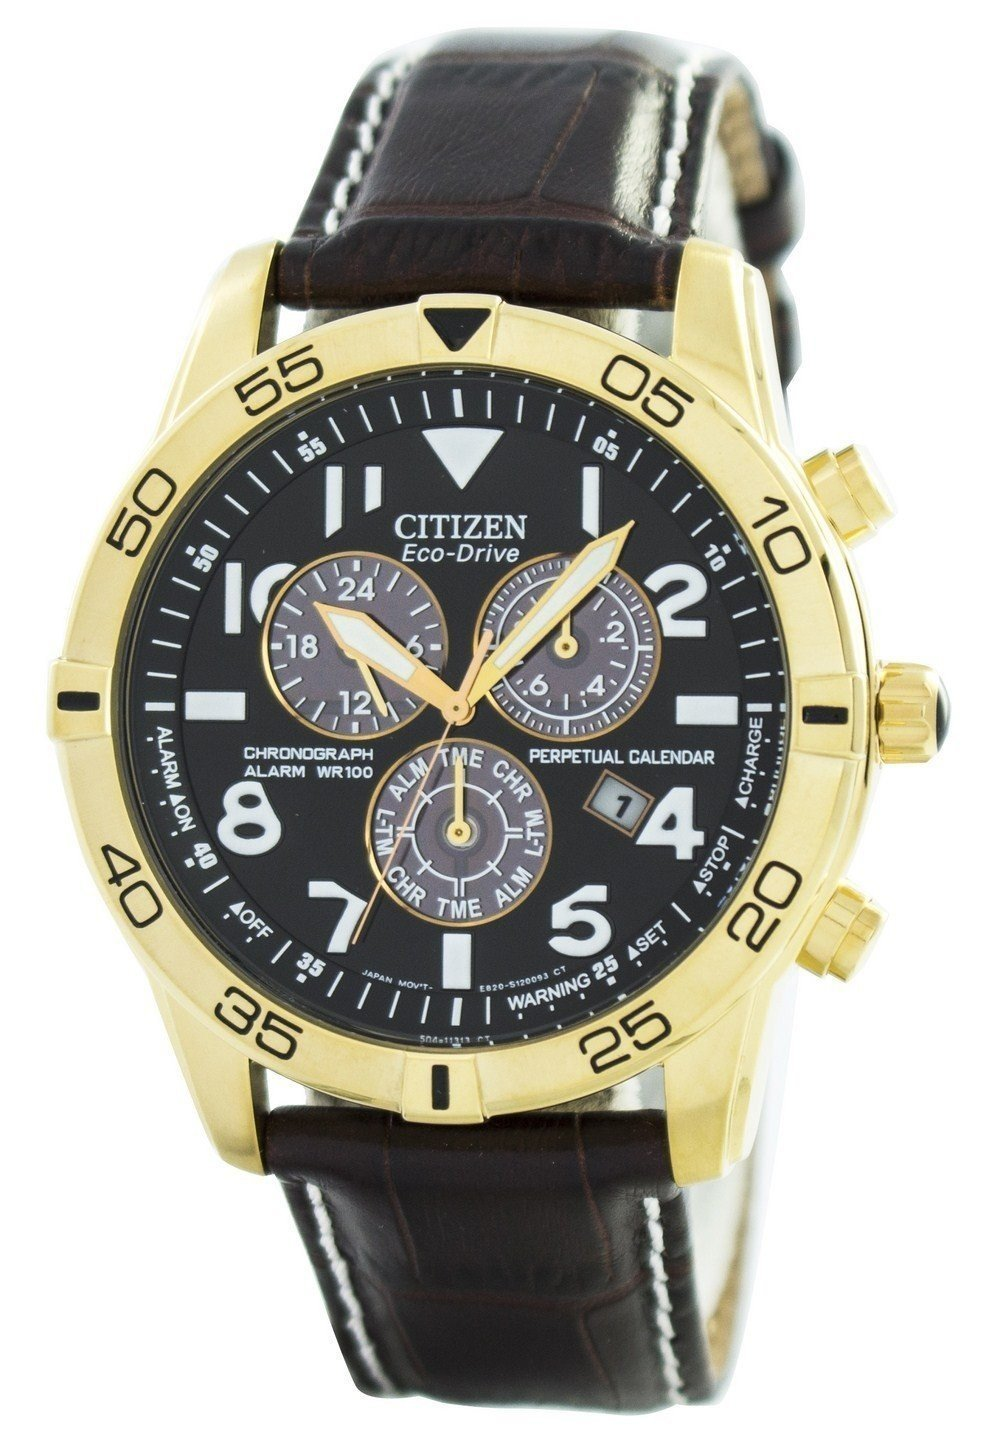 Citizen Eco-Drive Perpetual Calendar Chronograph Alarm 100M BL5472-01E Men's Watch